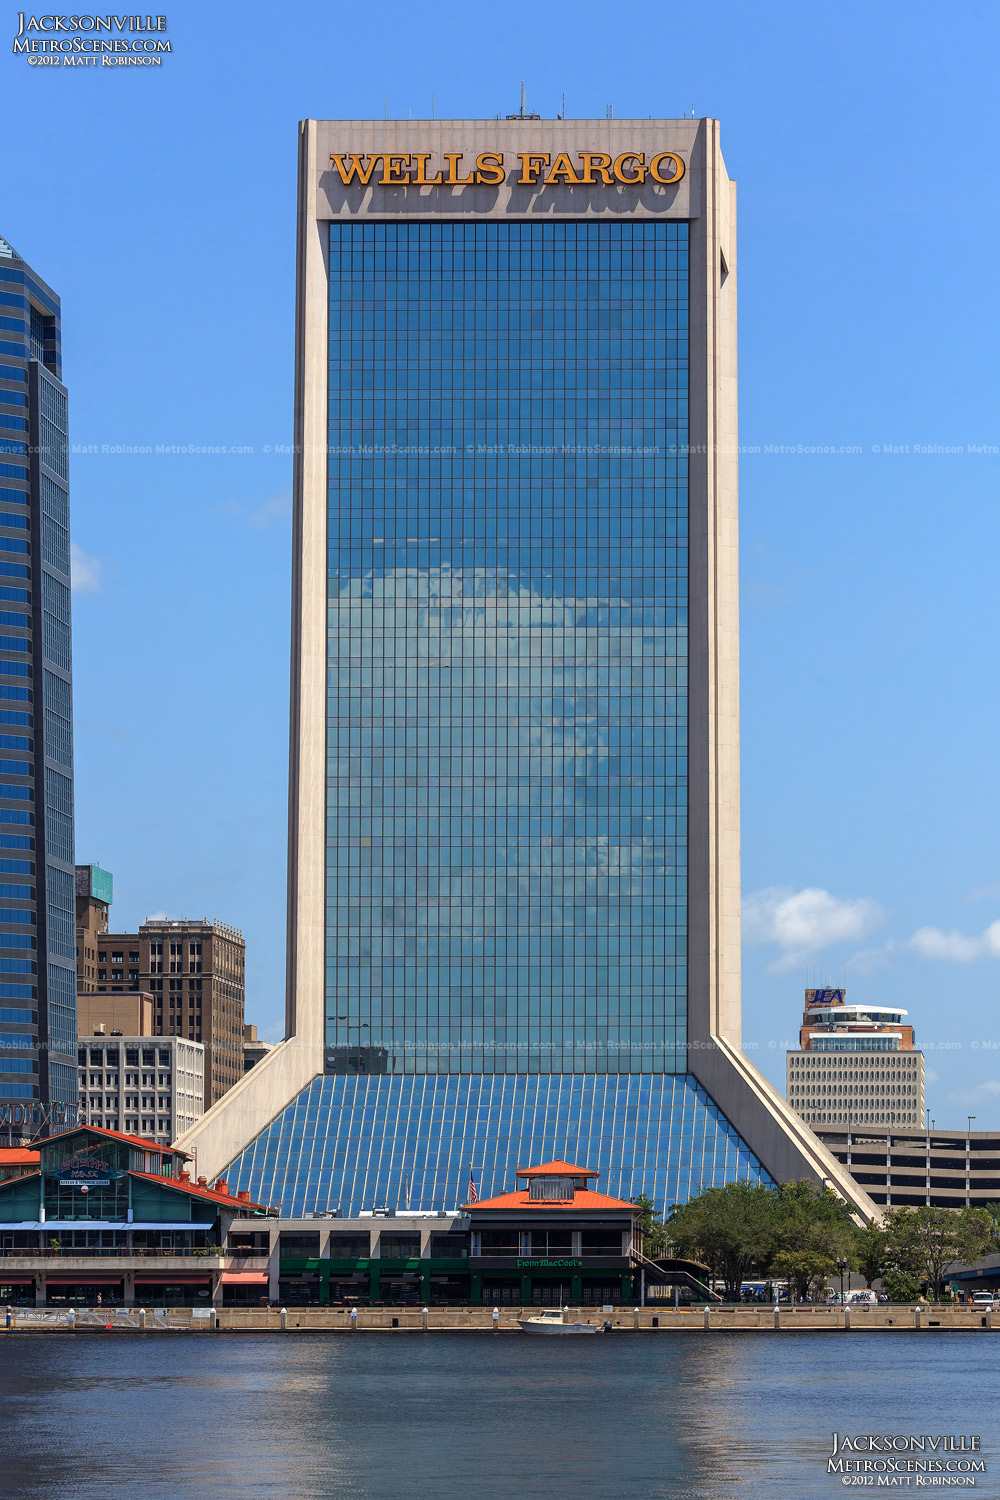 Wells Fargo Center in Jacksonville